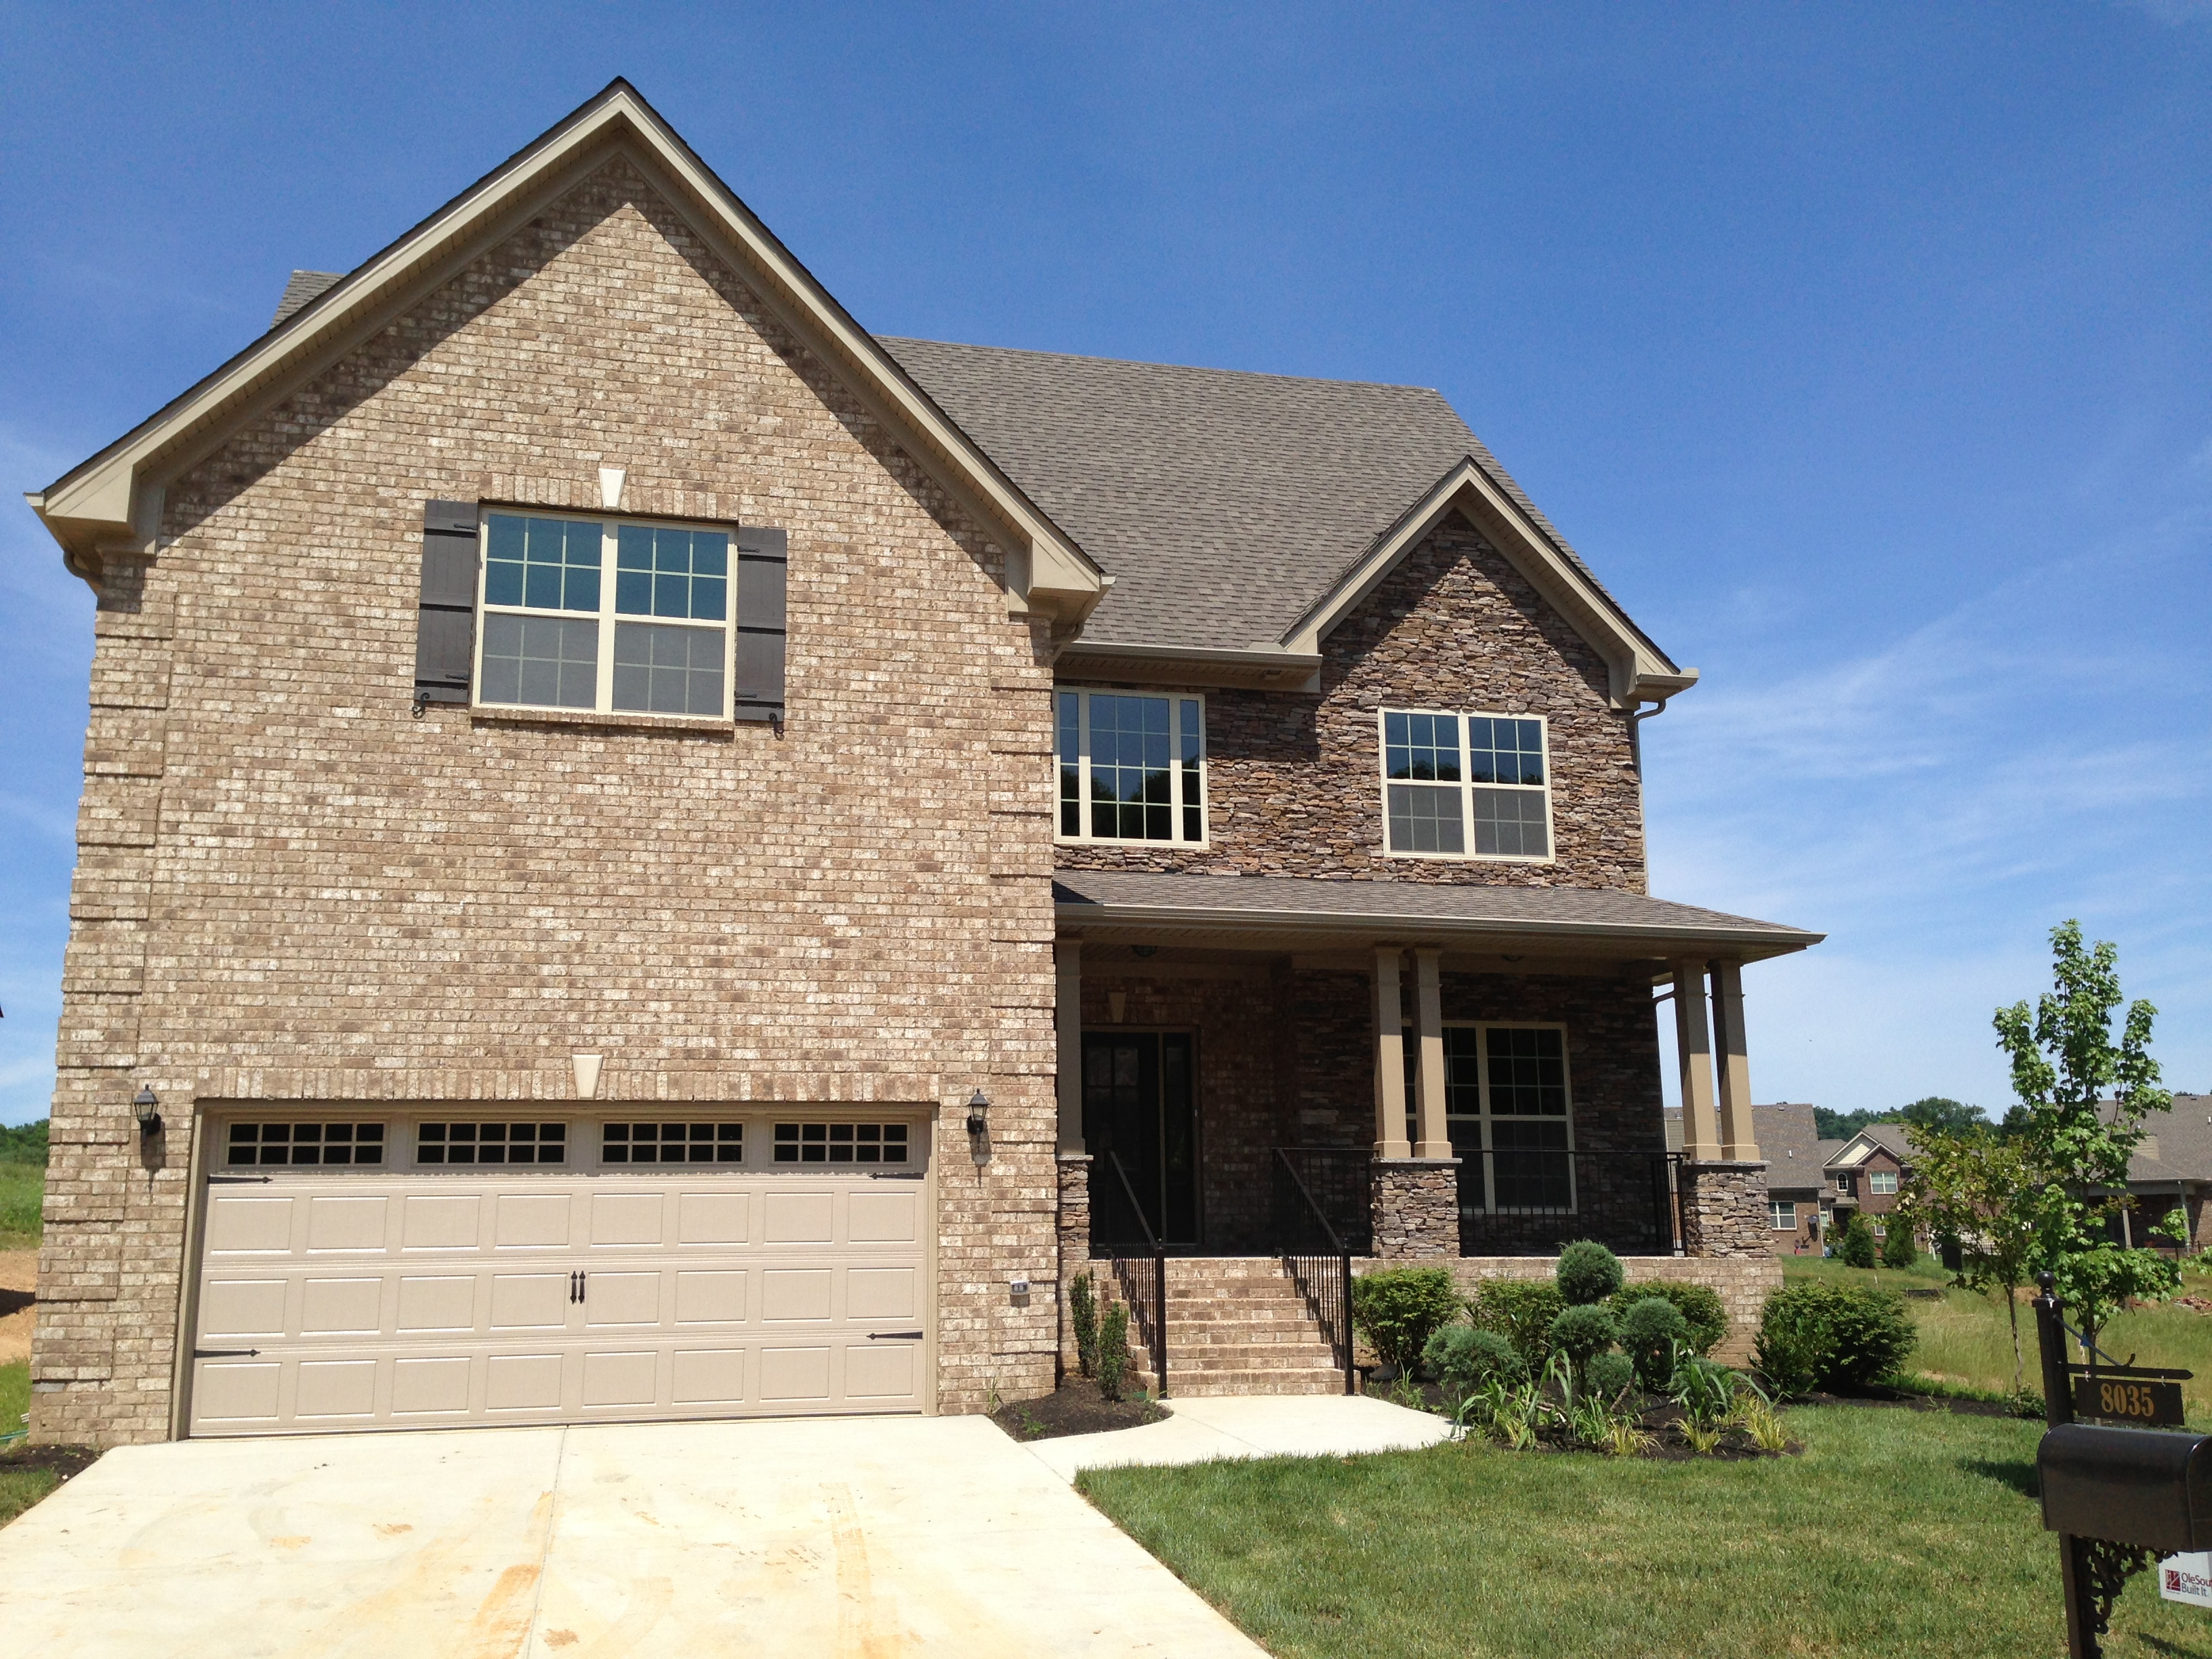 3244 3264 2448 new home exteriors for New home exteriors